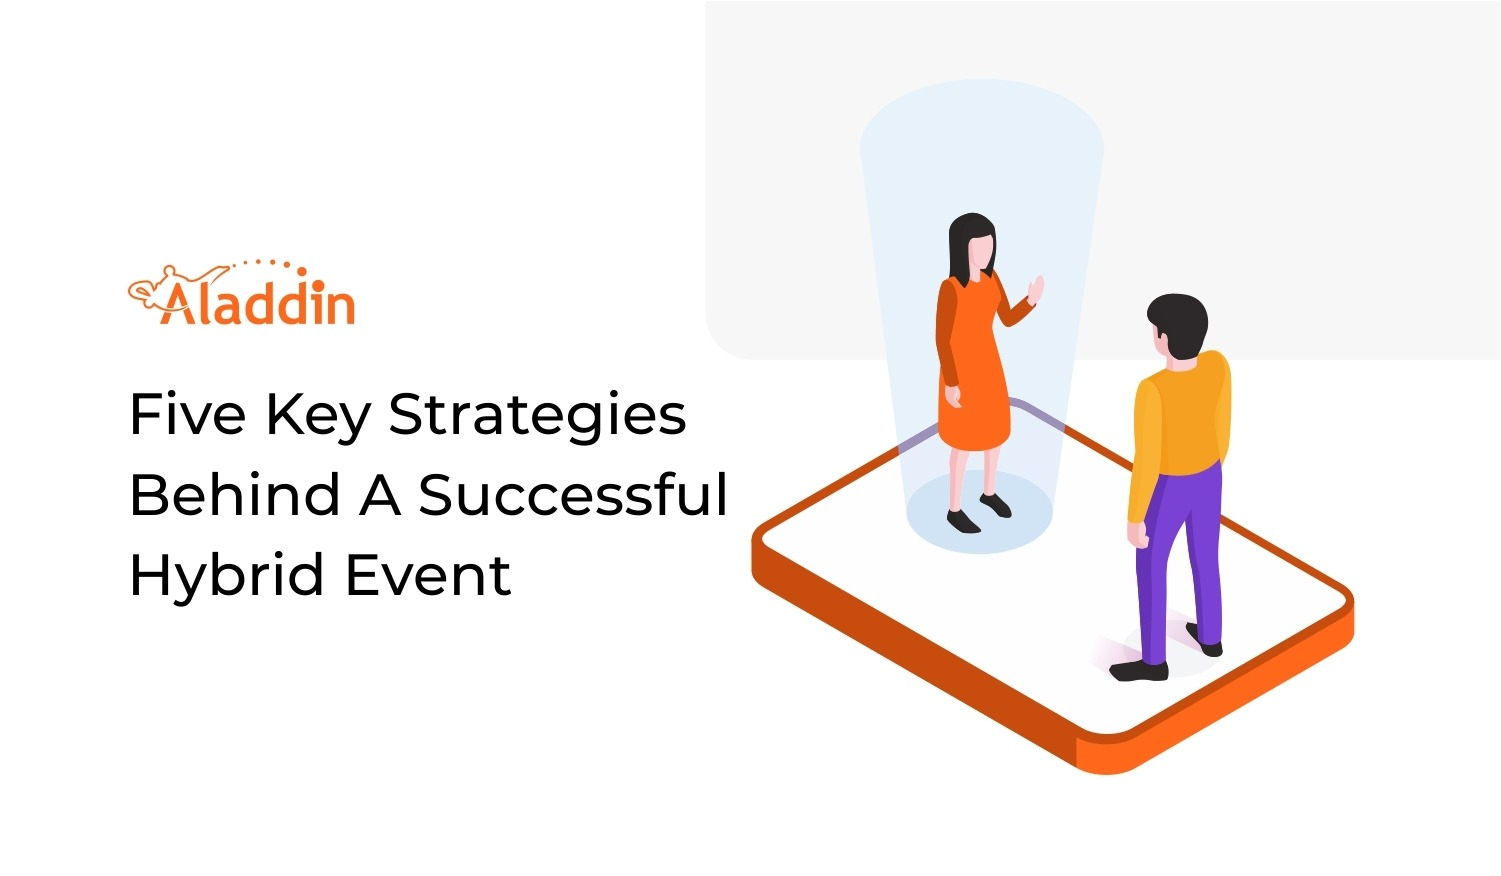 Five Key Strategies Behind A Successful Hybrid Event